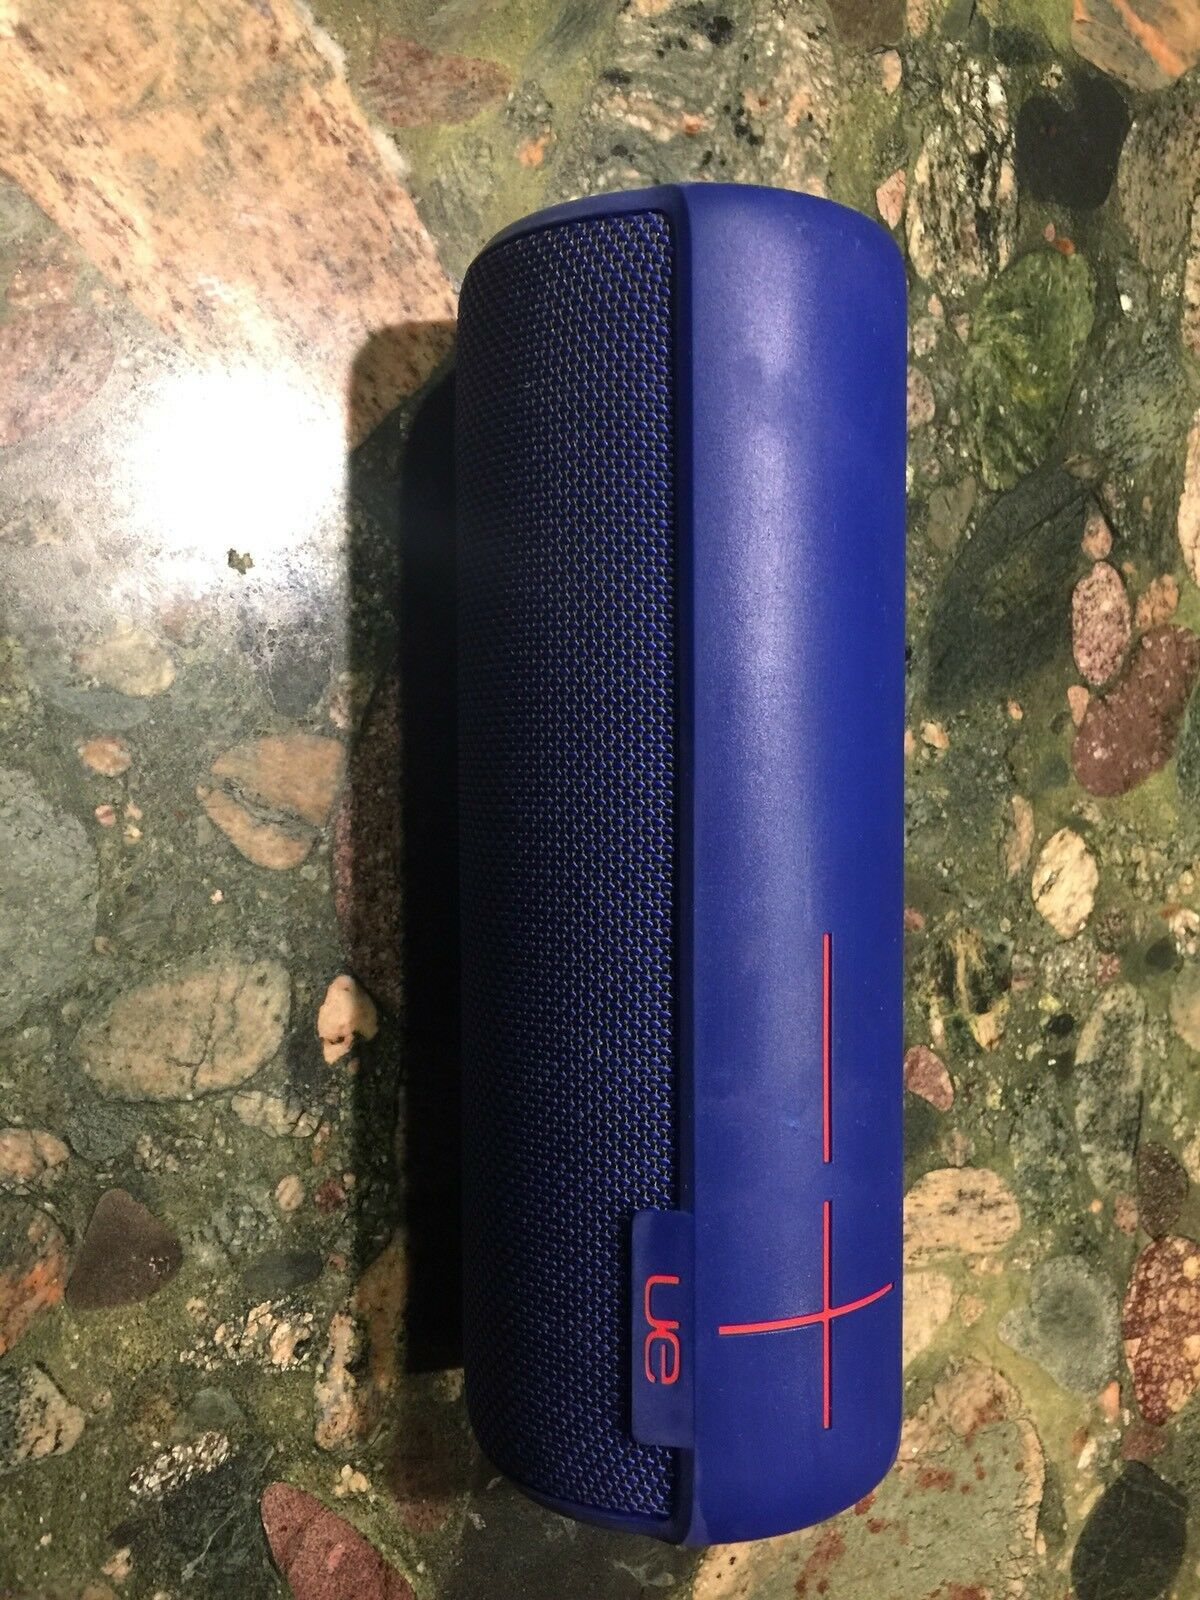 Logitech Ue Megaboom Electric Blue Wireless Bluetooth 360 Surround Ultimate Ears Plum Speaker 1 Of 5only Available